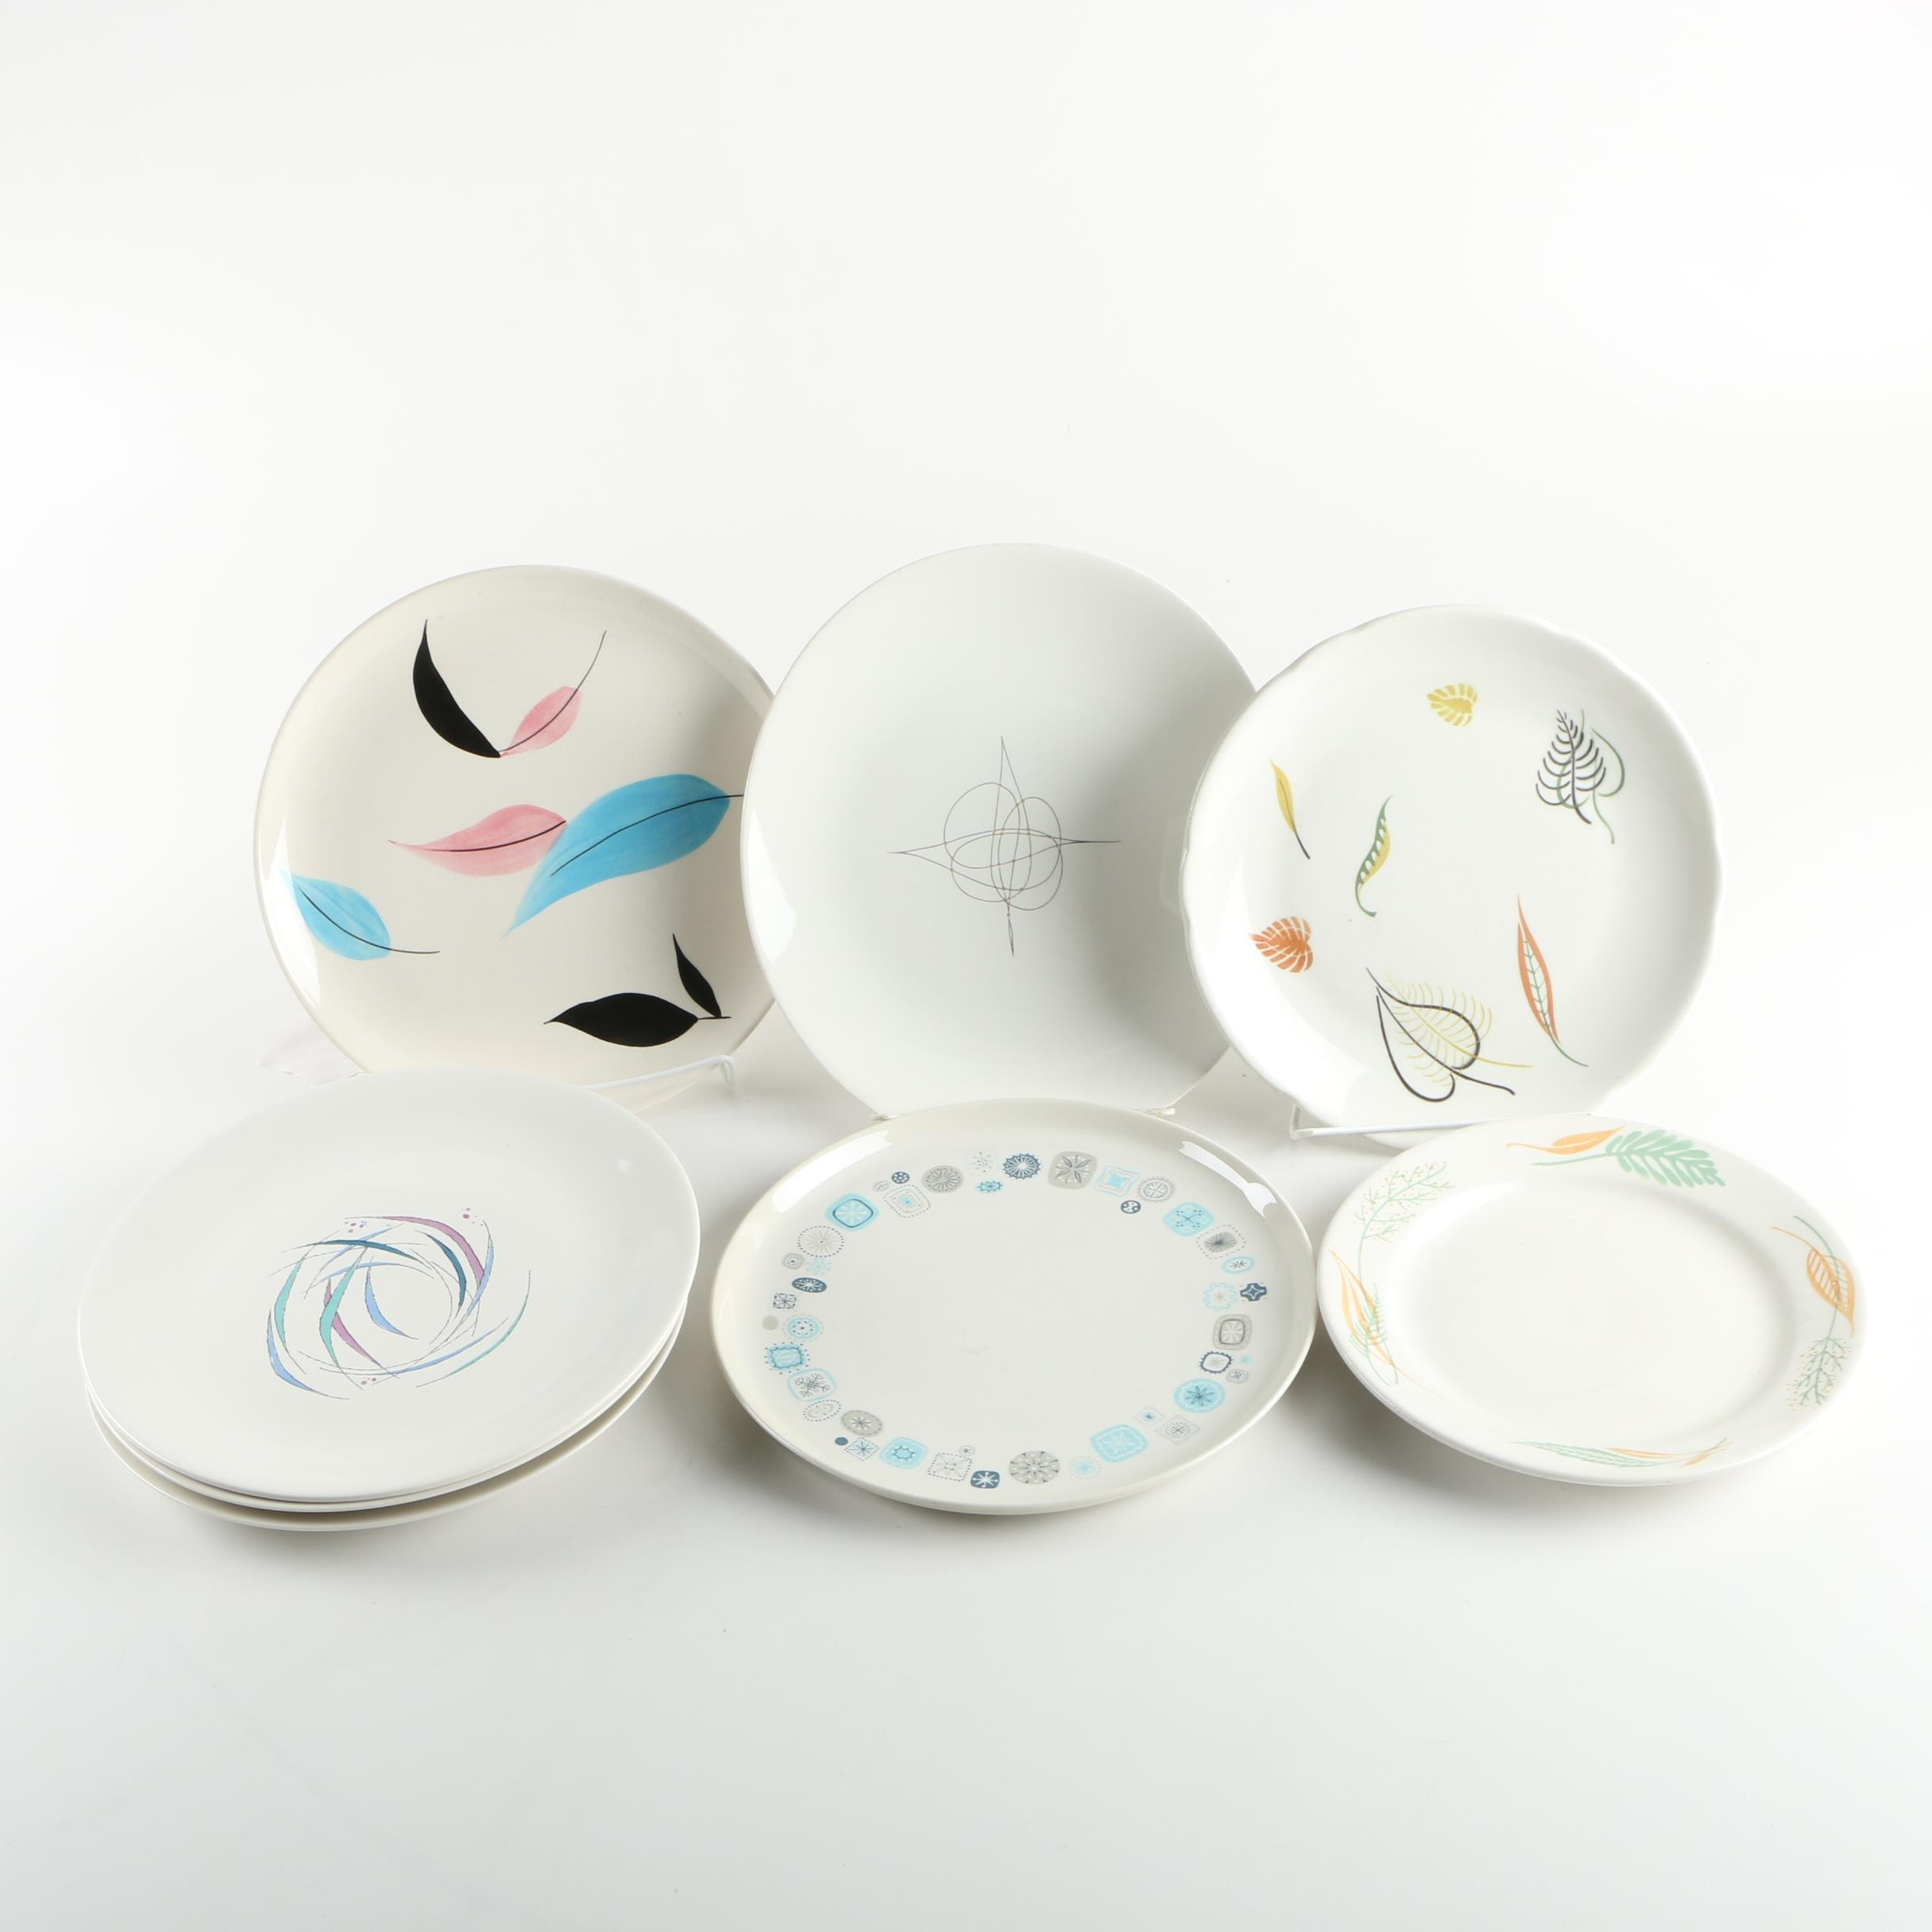 Vintage Ceramic Plates Featuring Franciscan